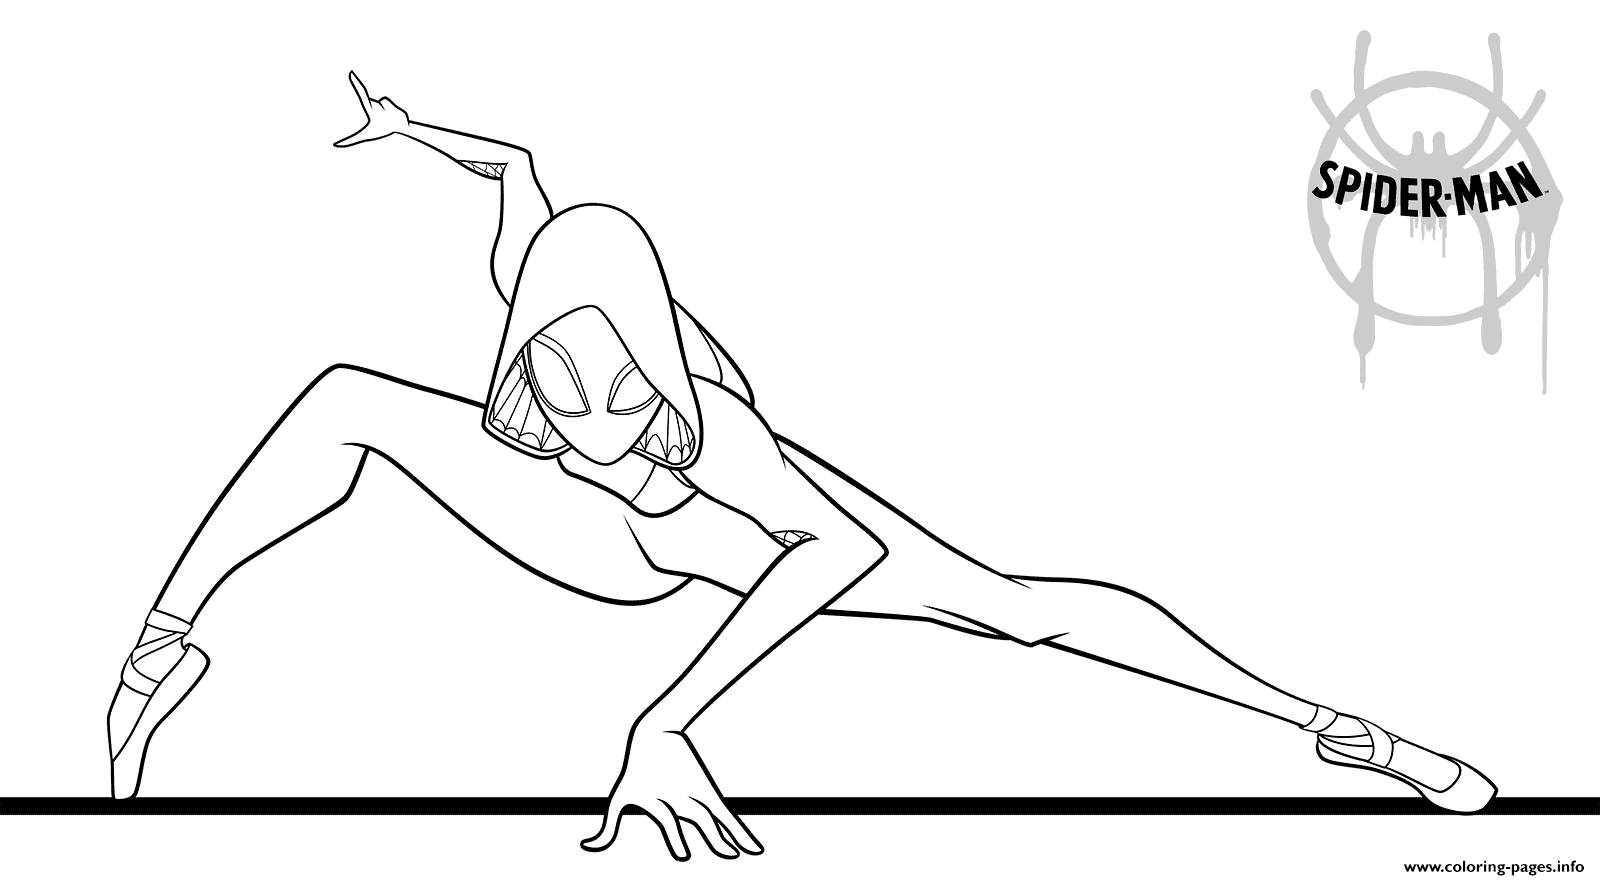 970 Girl Spiderman Coloring Pages Images & Pictures In HD